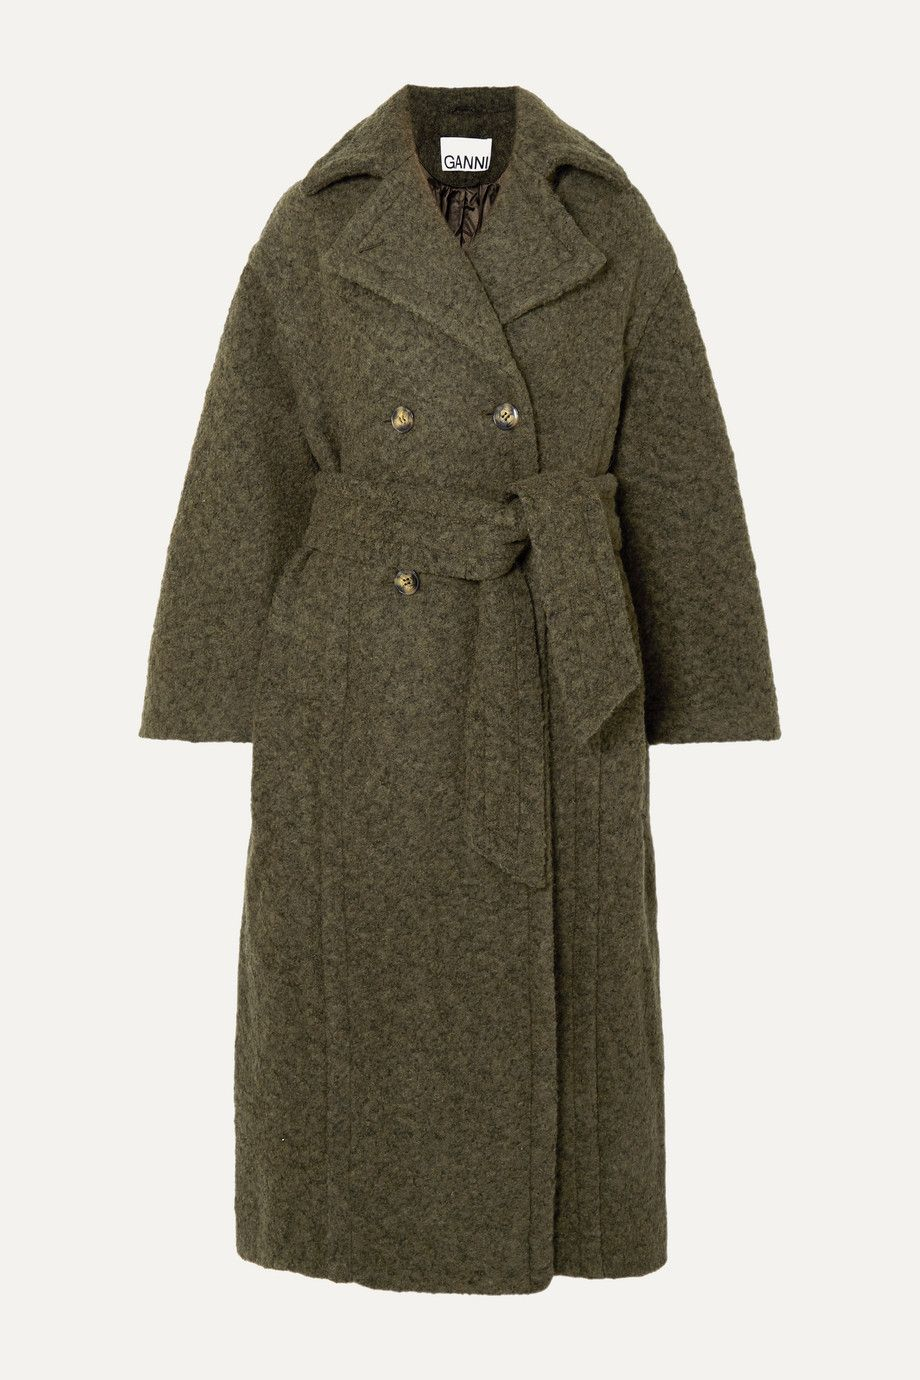 ganni-oversized-double-breasted-wool-blend-boucle-coat